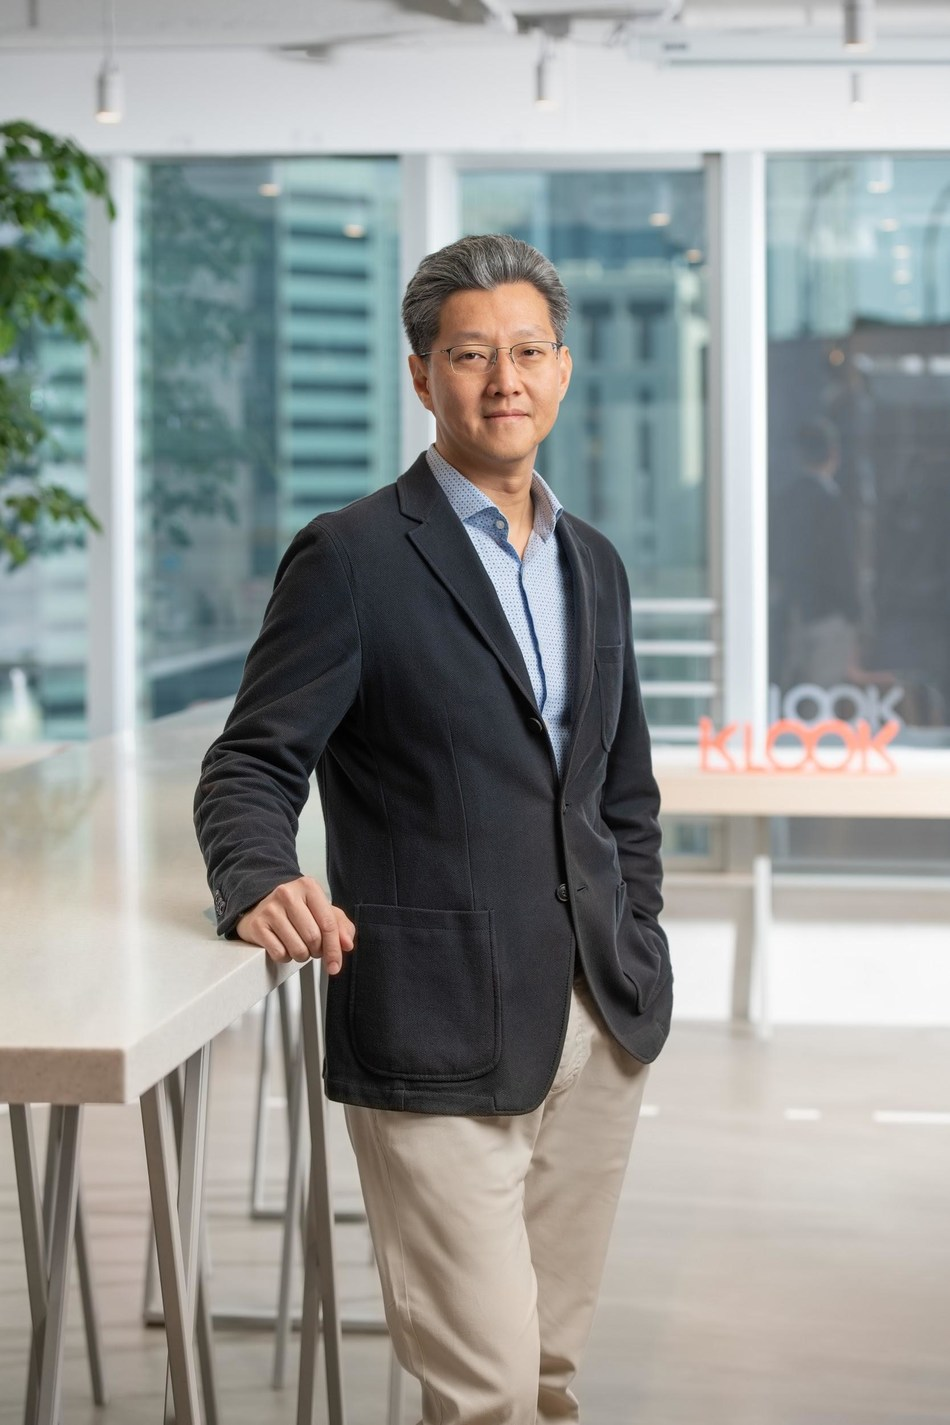 Klook appoints Wilfred Fan as Chief Commercial Officer